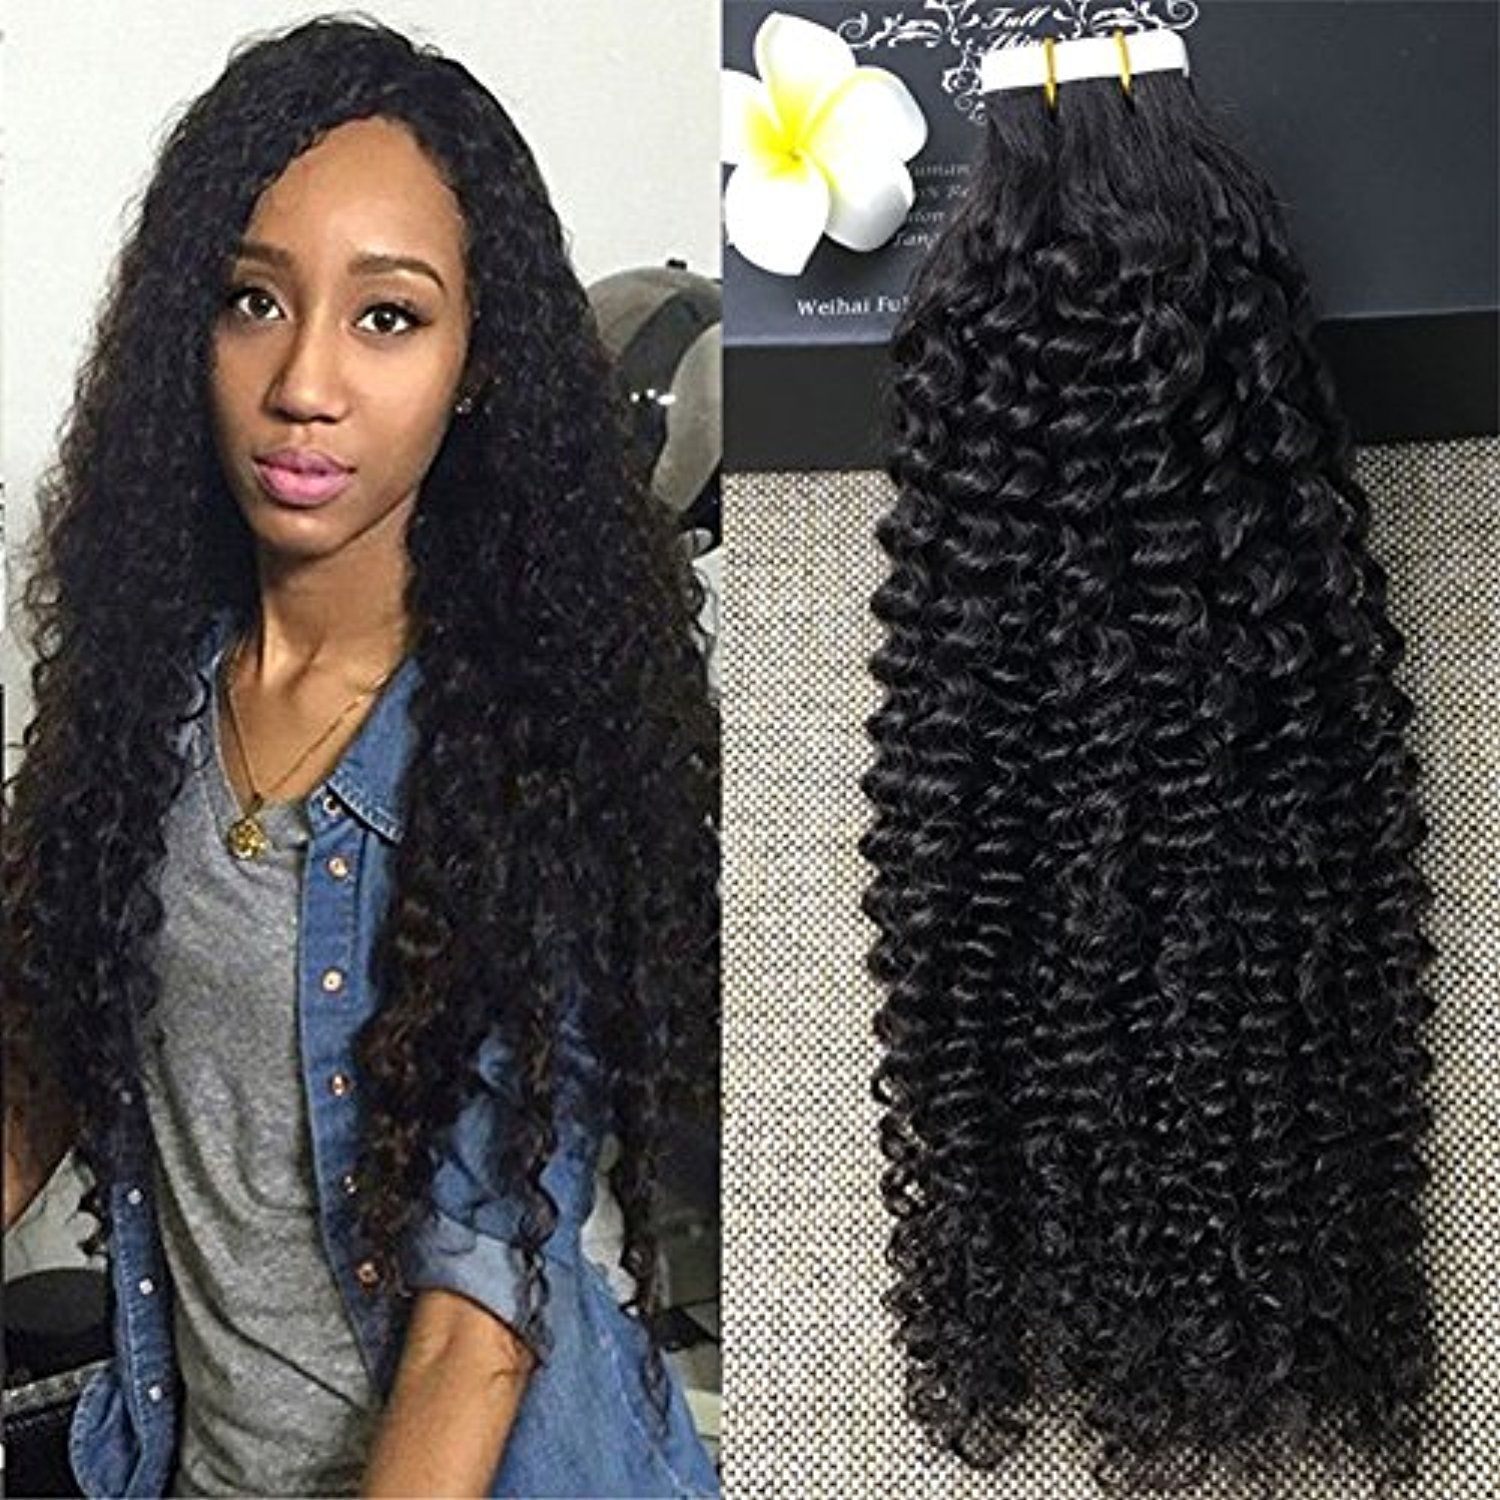 Full Shine 14 Inch 50gram 20 Pcs Per Package Natural Color Tape In Curly Hair Extensions Human Hair Remy Hair Extensions Best Tape In Hair Extensions Hair Tape